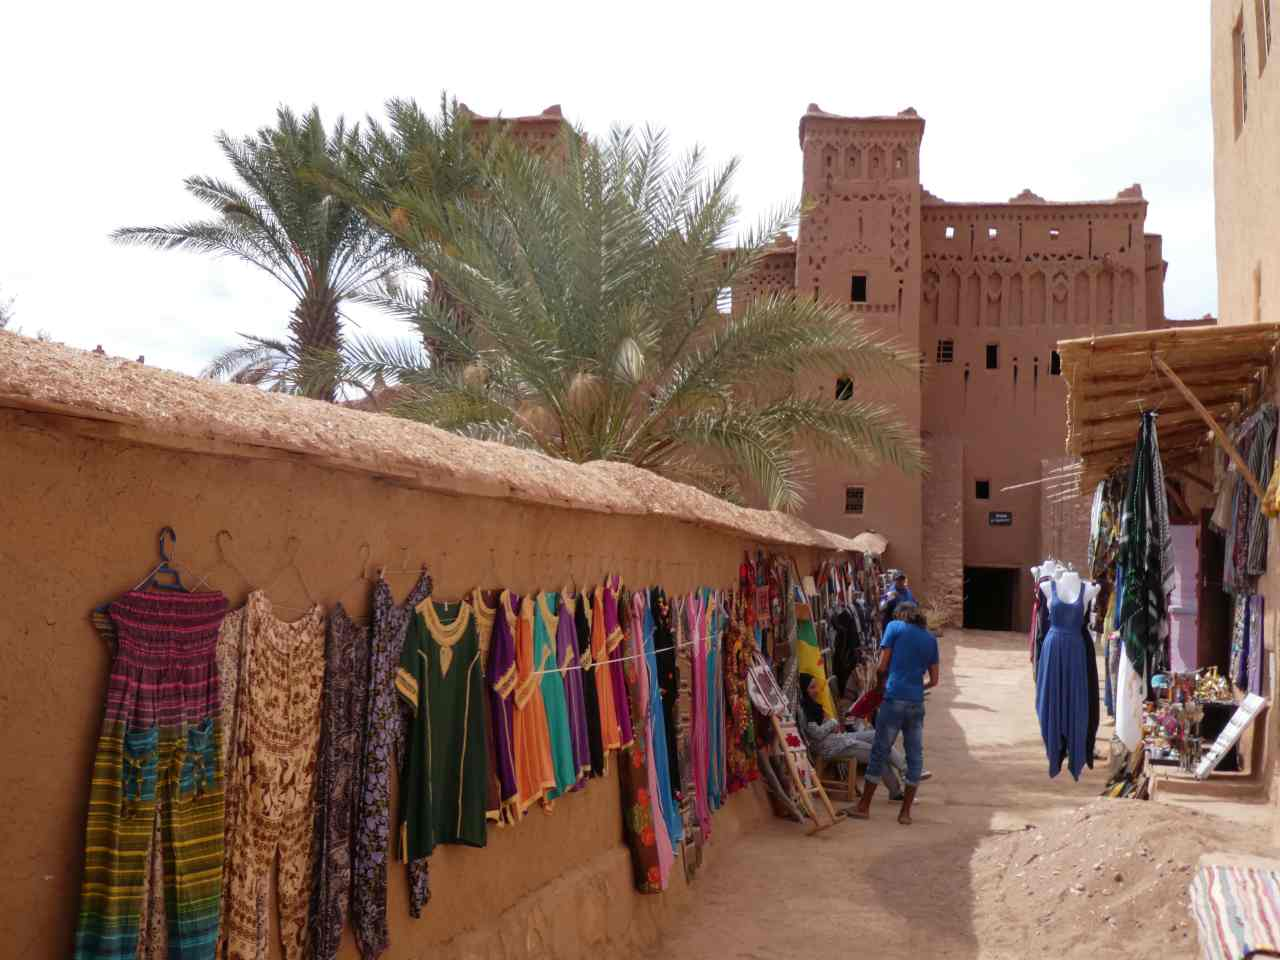 Clothes for sale at Ait Benhaddou